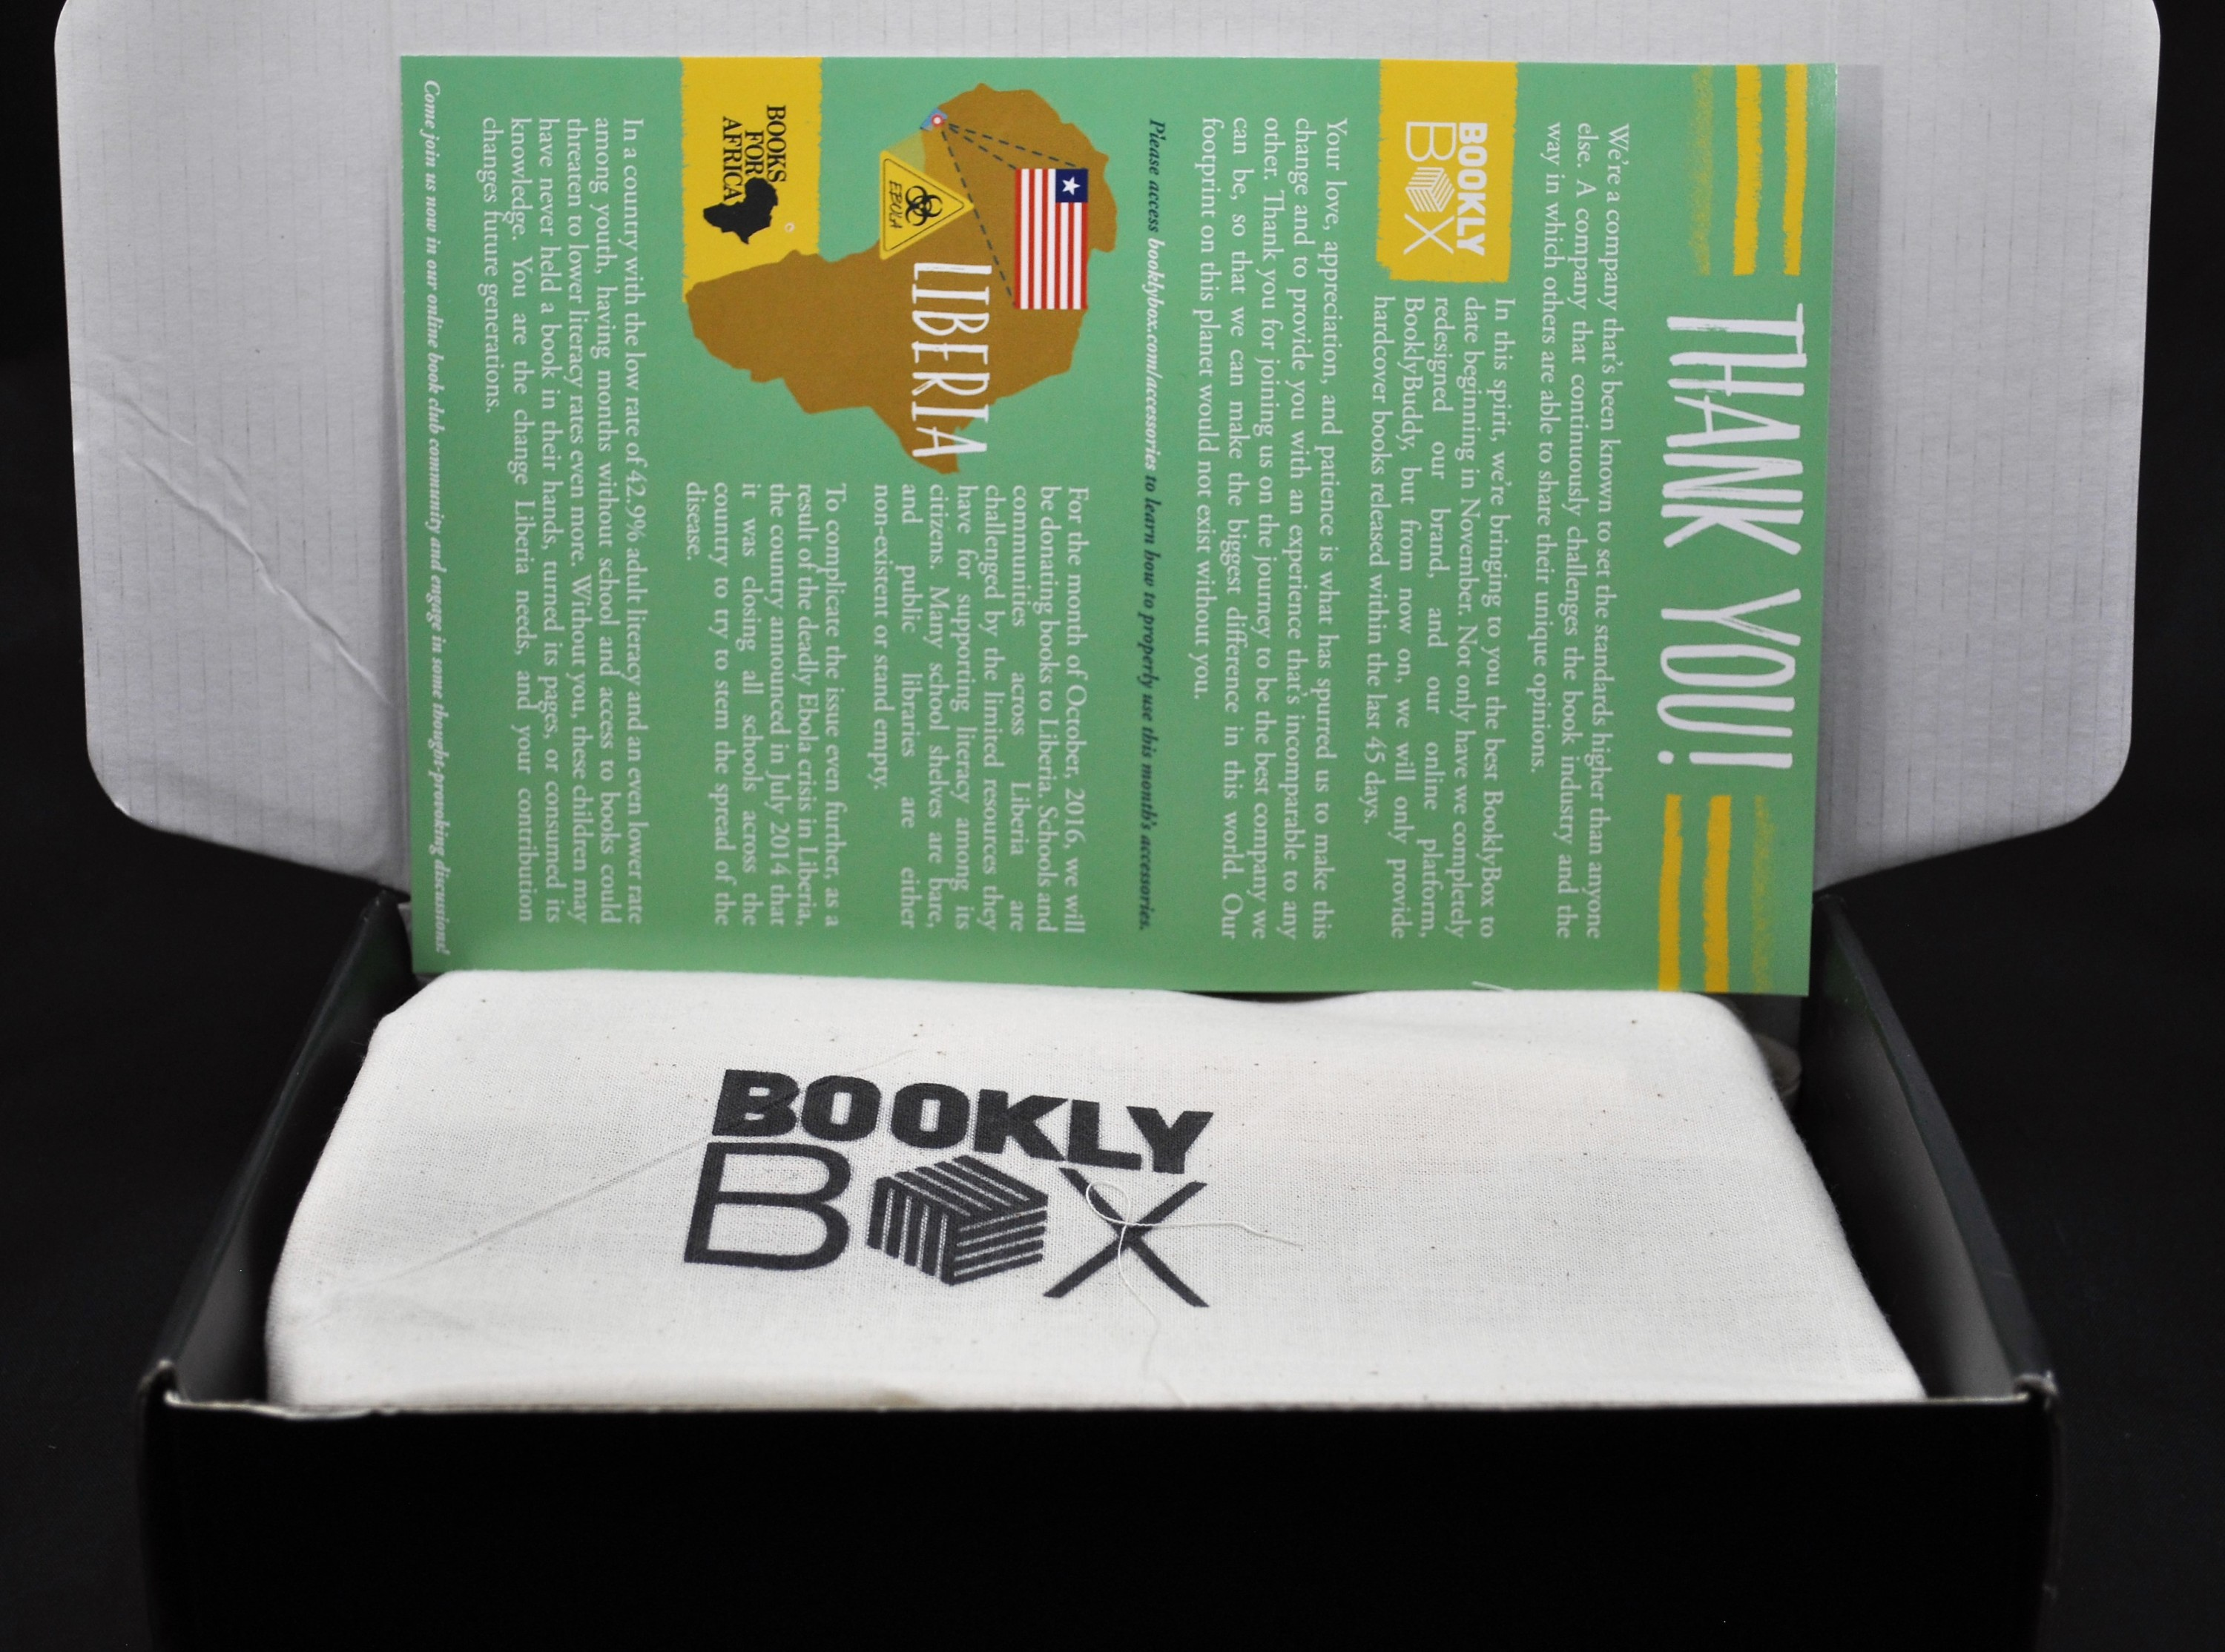 bookly-box-october-2016-contents